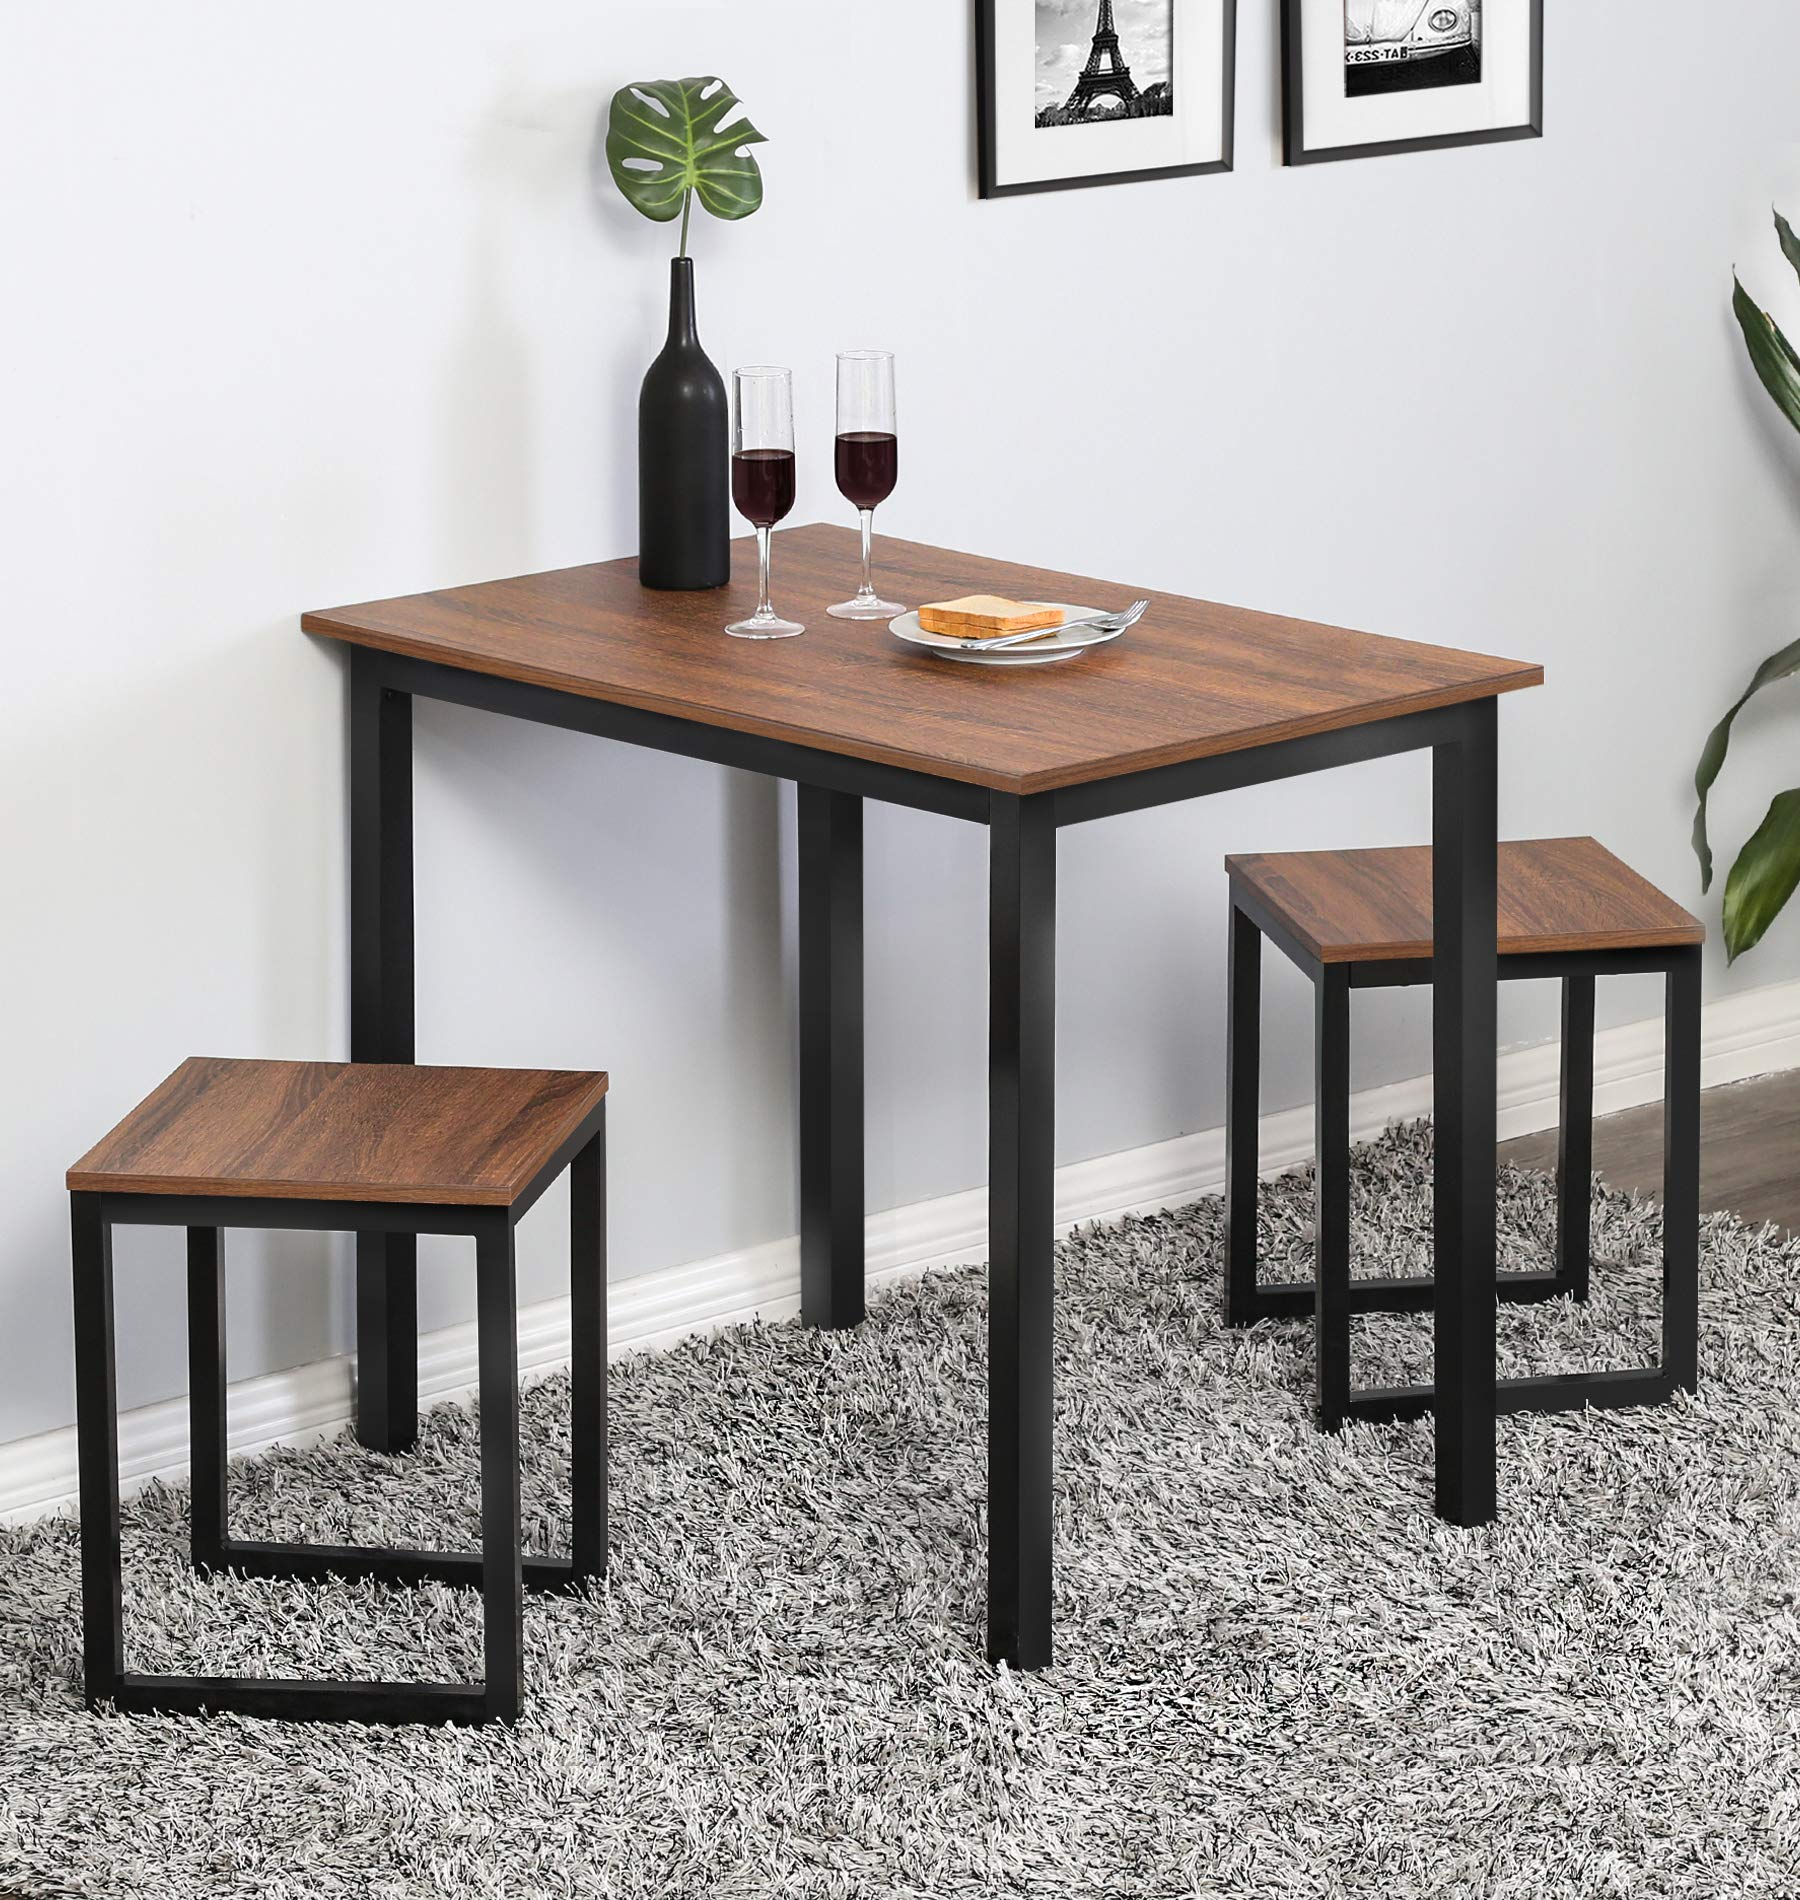 Homury Modern Wood 3 Piece Dining Set Studio Collection Soho Dining Table with Two Stools Home Kitchen Breakfast Table,Brown by Homury